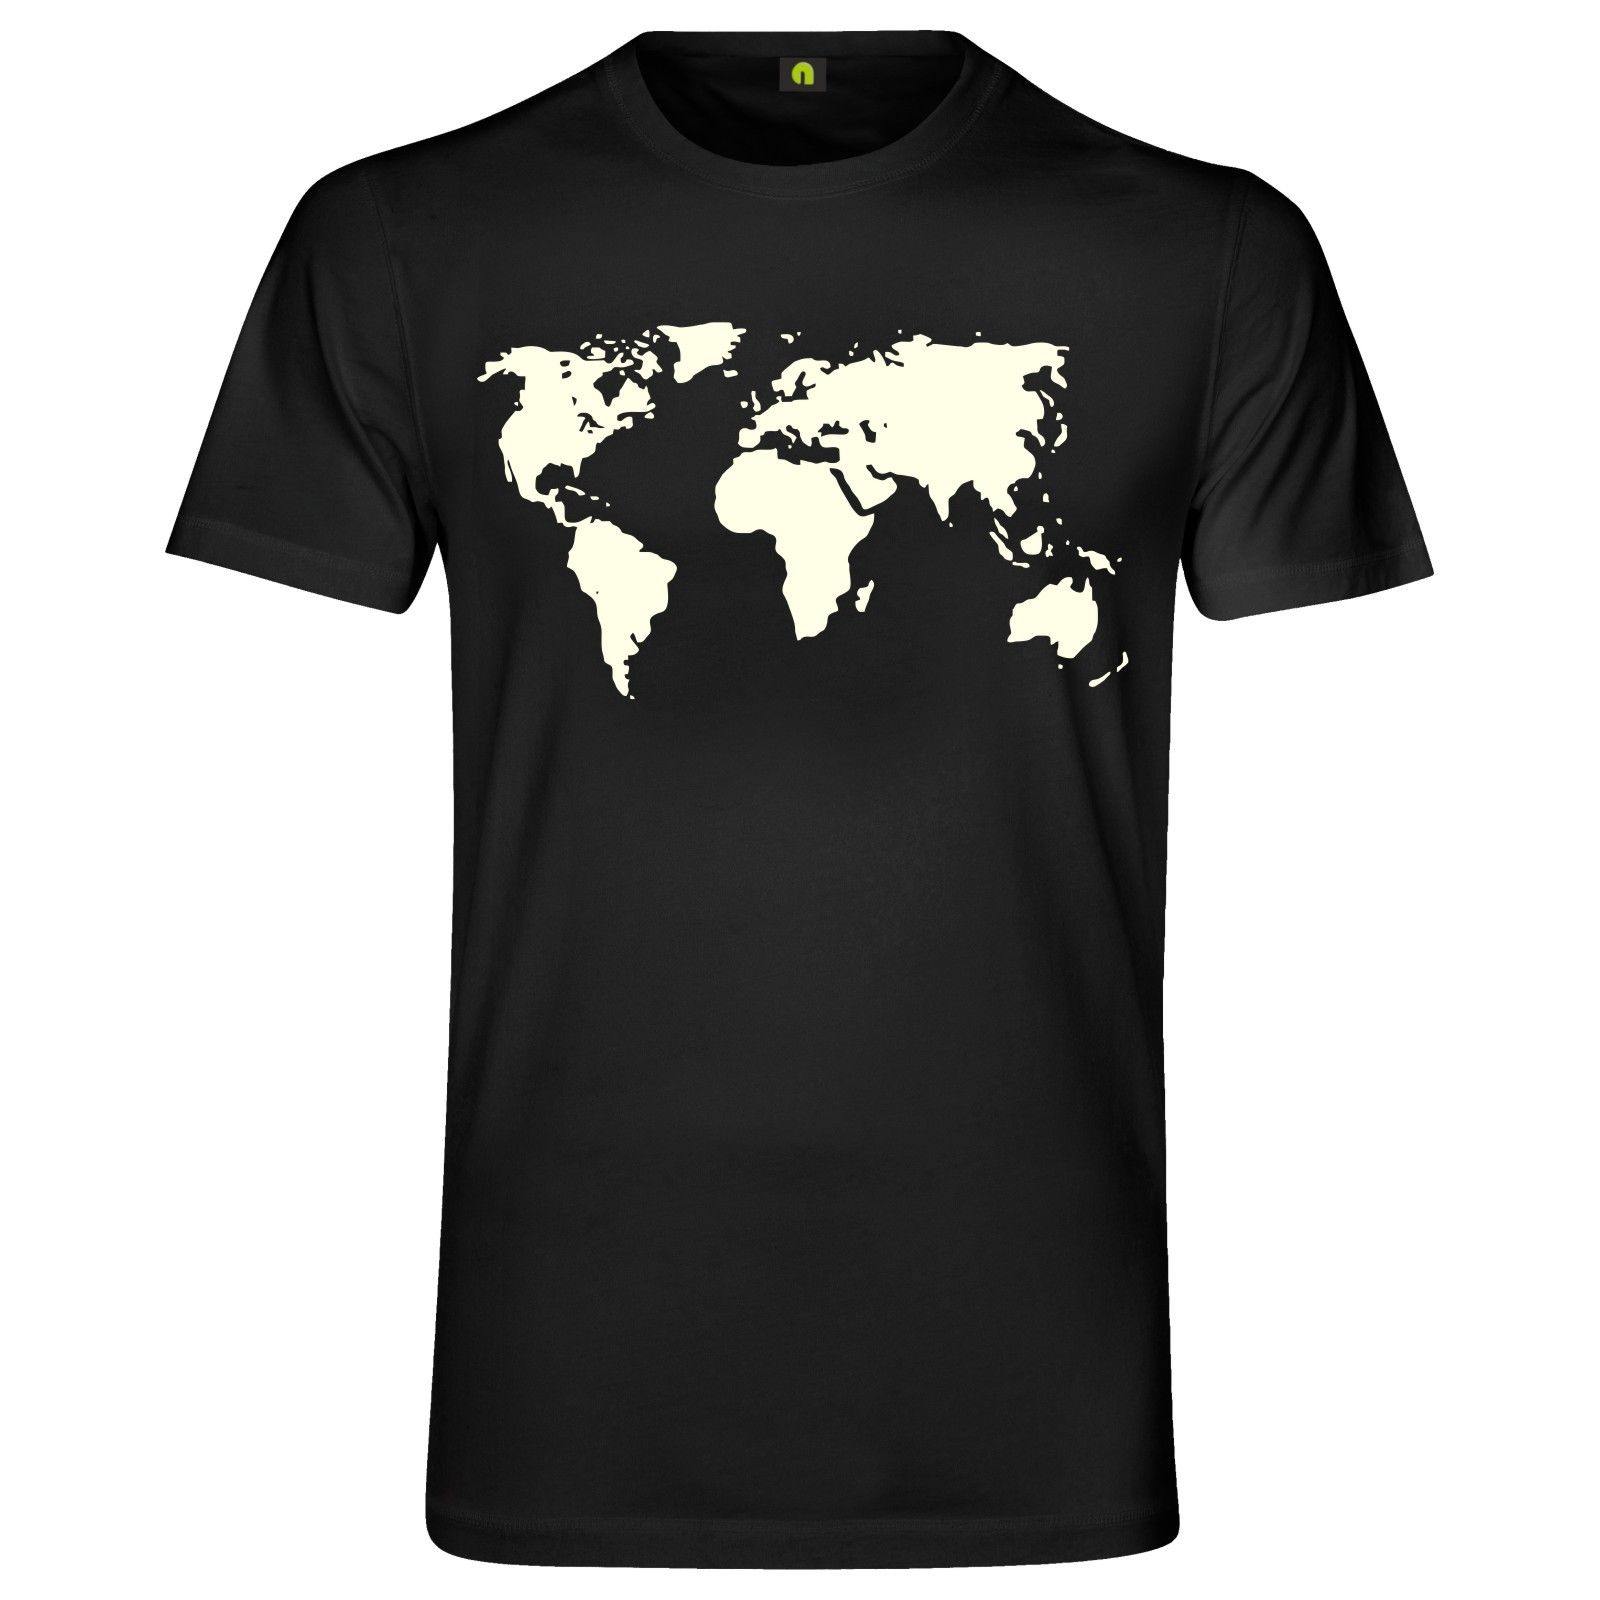 2018 fashion cool men t shirt world map t shirt world globe 2018 fashion cool men t shirt world map t shirt world globe europe asia america usa in t shirts from mens clothing accessories on gumiabroncs Images